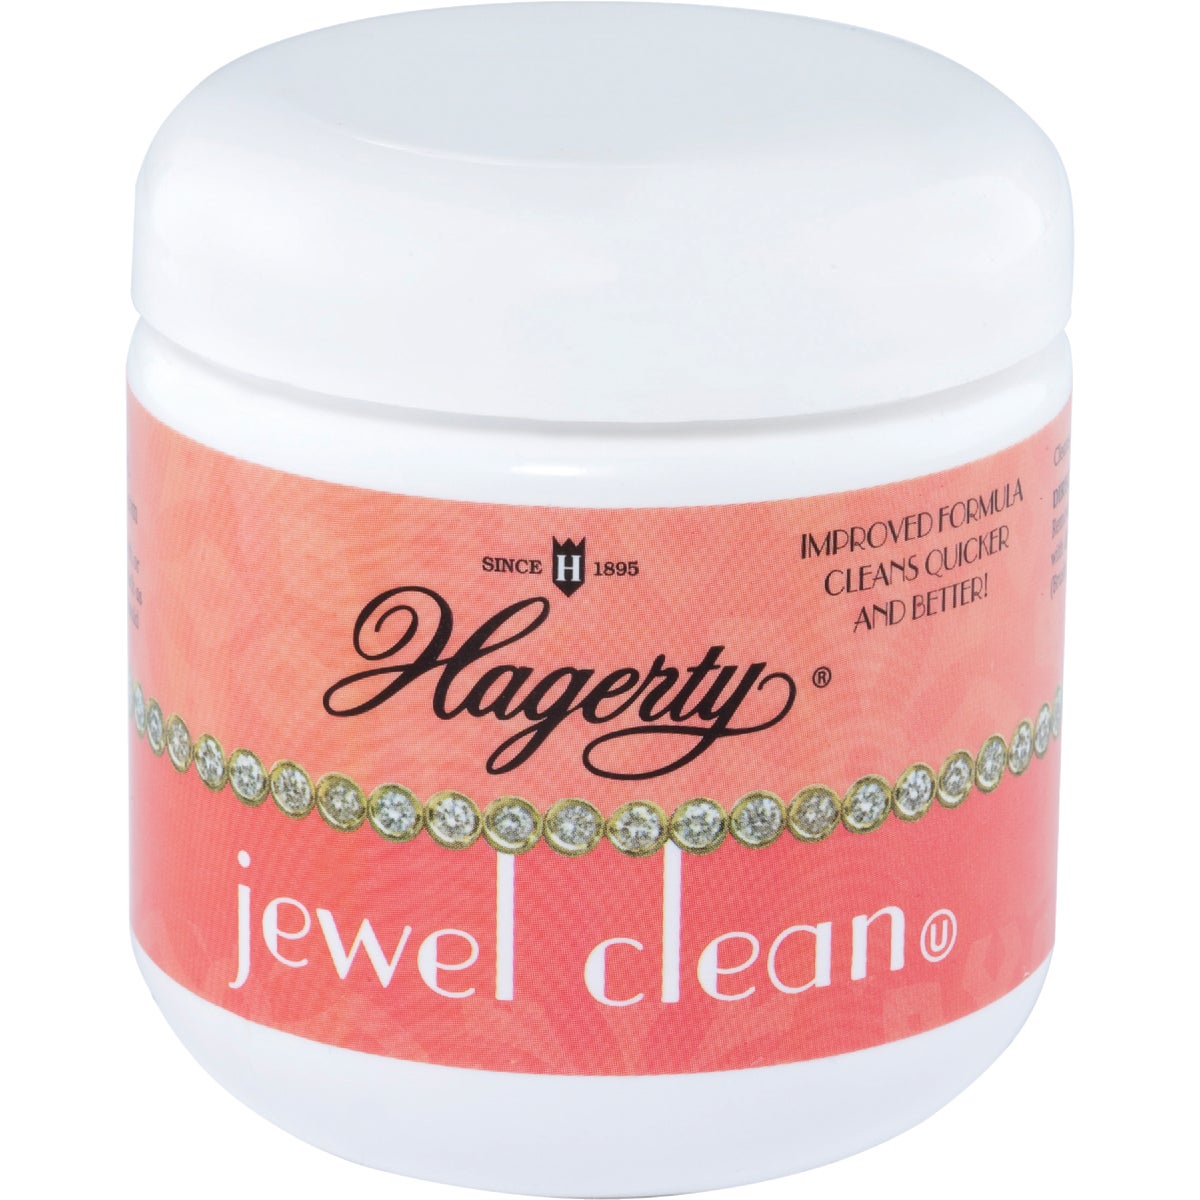 7OZ JEWEL CLEAN - 16007 by W J Hagerty & Sons